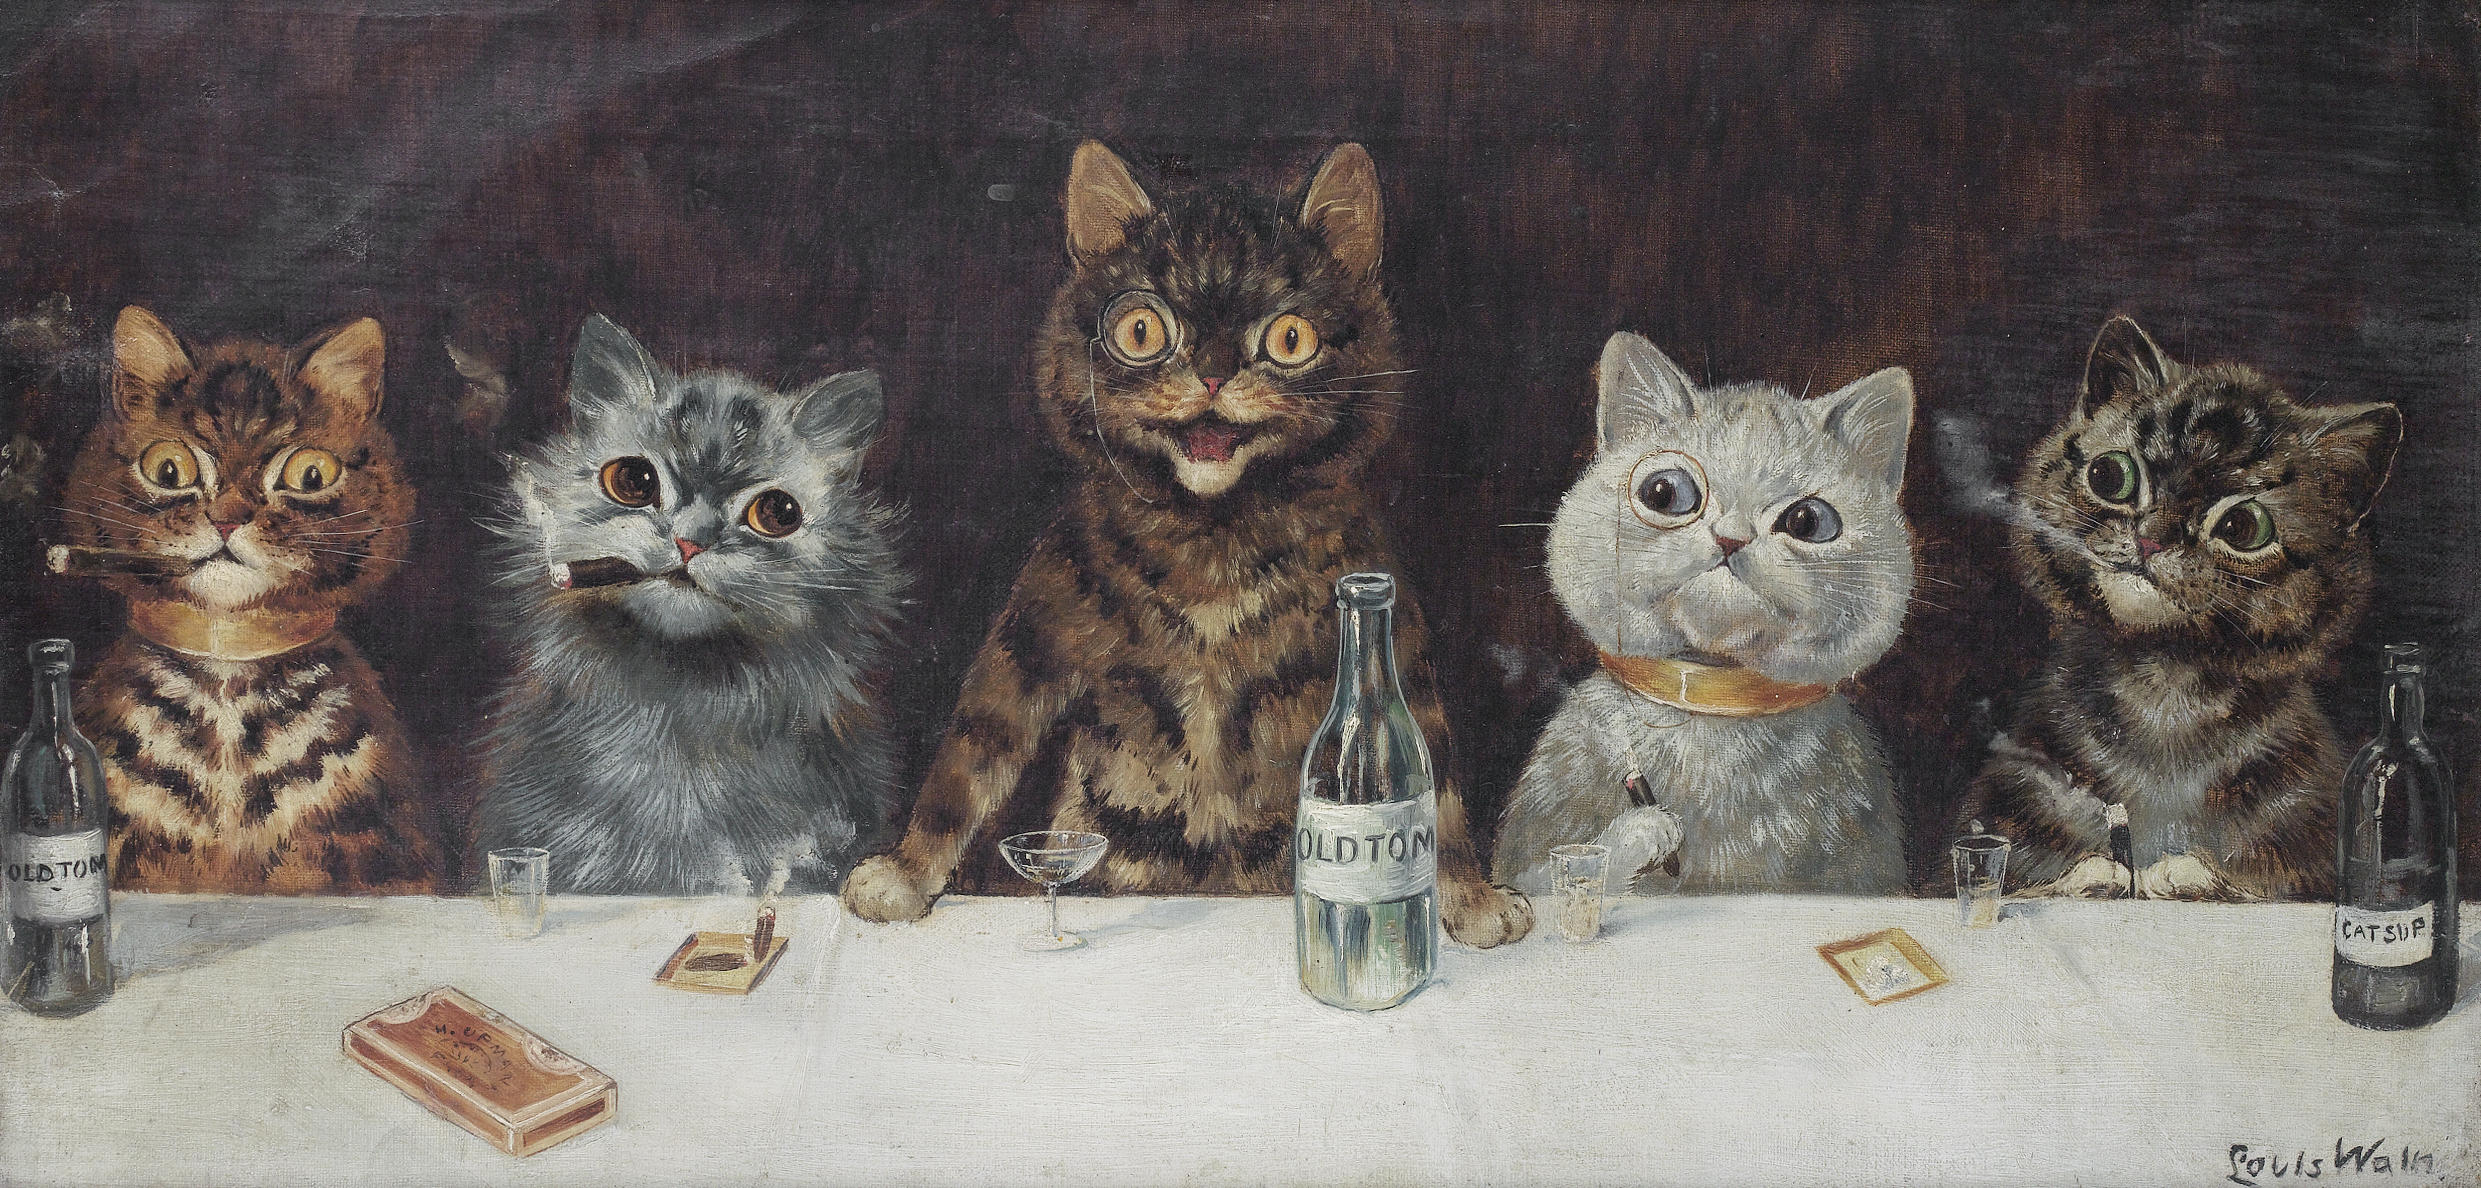 Louis Wain' The Bachelor Party'